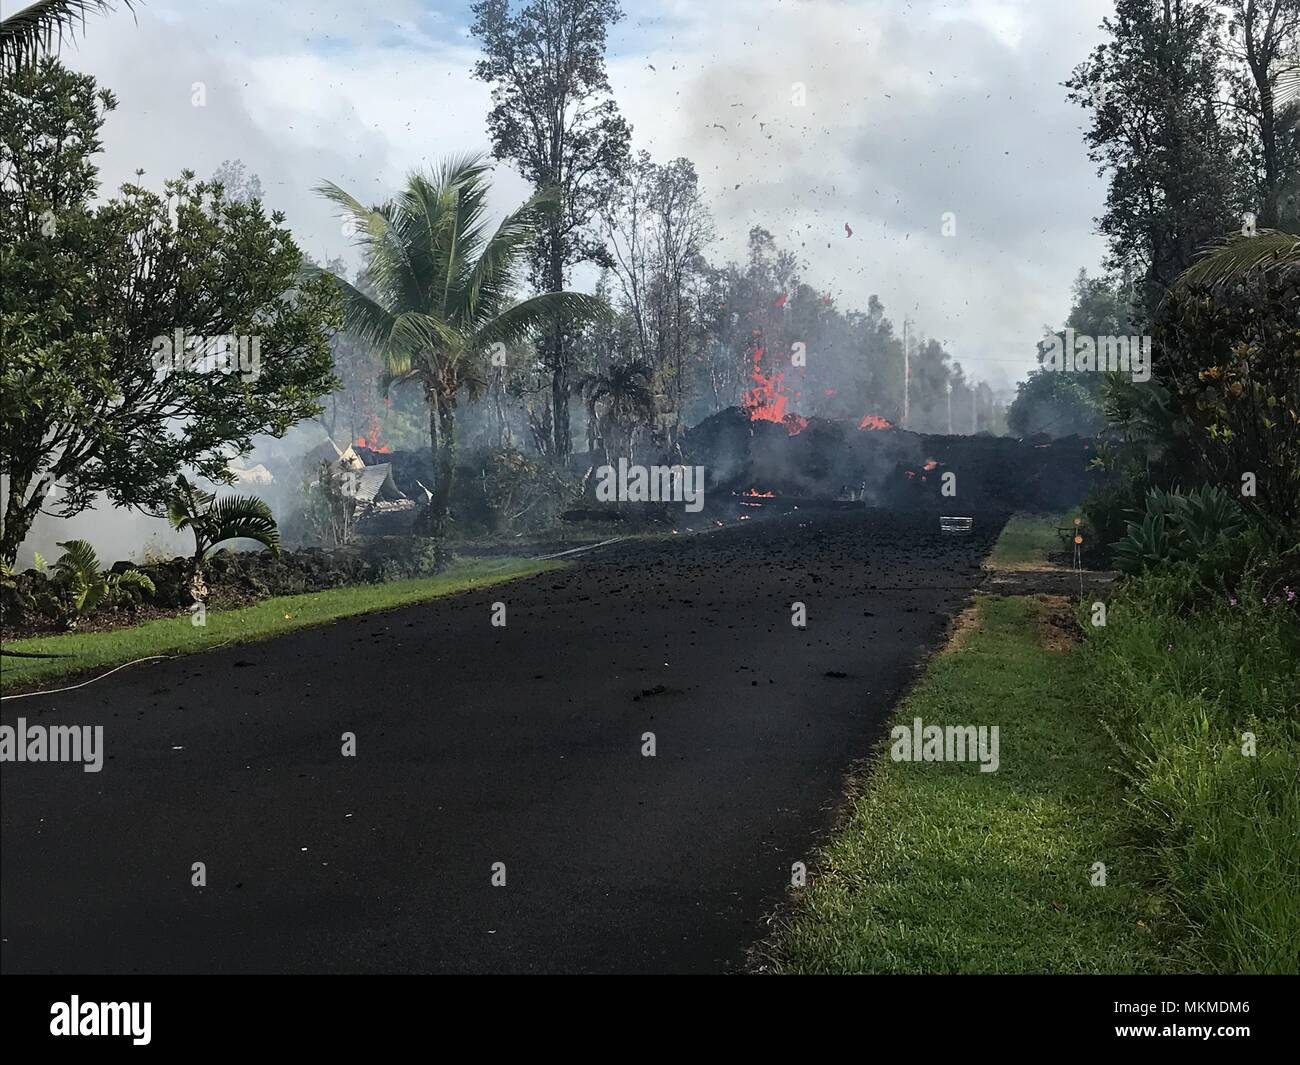 A pyroclastic lava flow from the Kilauea volcanic eruption moving along Leilani and Kaupili Streets May 4, 2018 in Leilani Estates, Hawaii. The recent eruption continues destroying homes, forcing evacuations and spewing lava and poison gas on the Big Island of Hawaii. - Stock Image